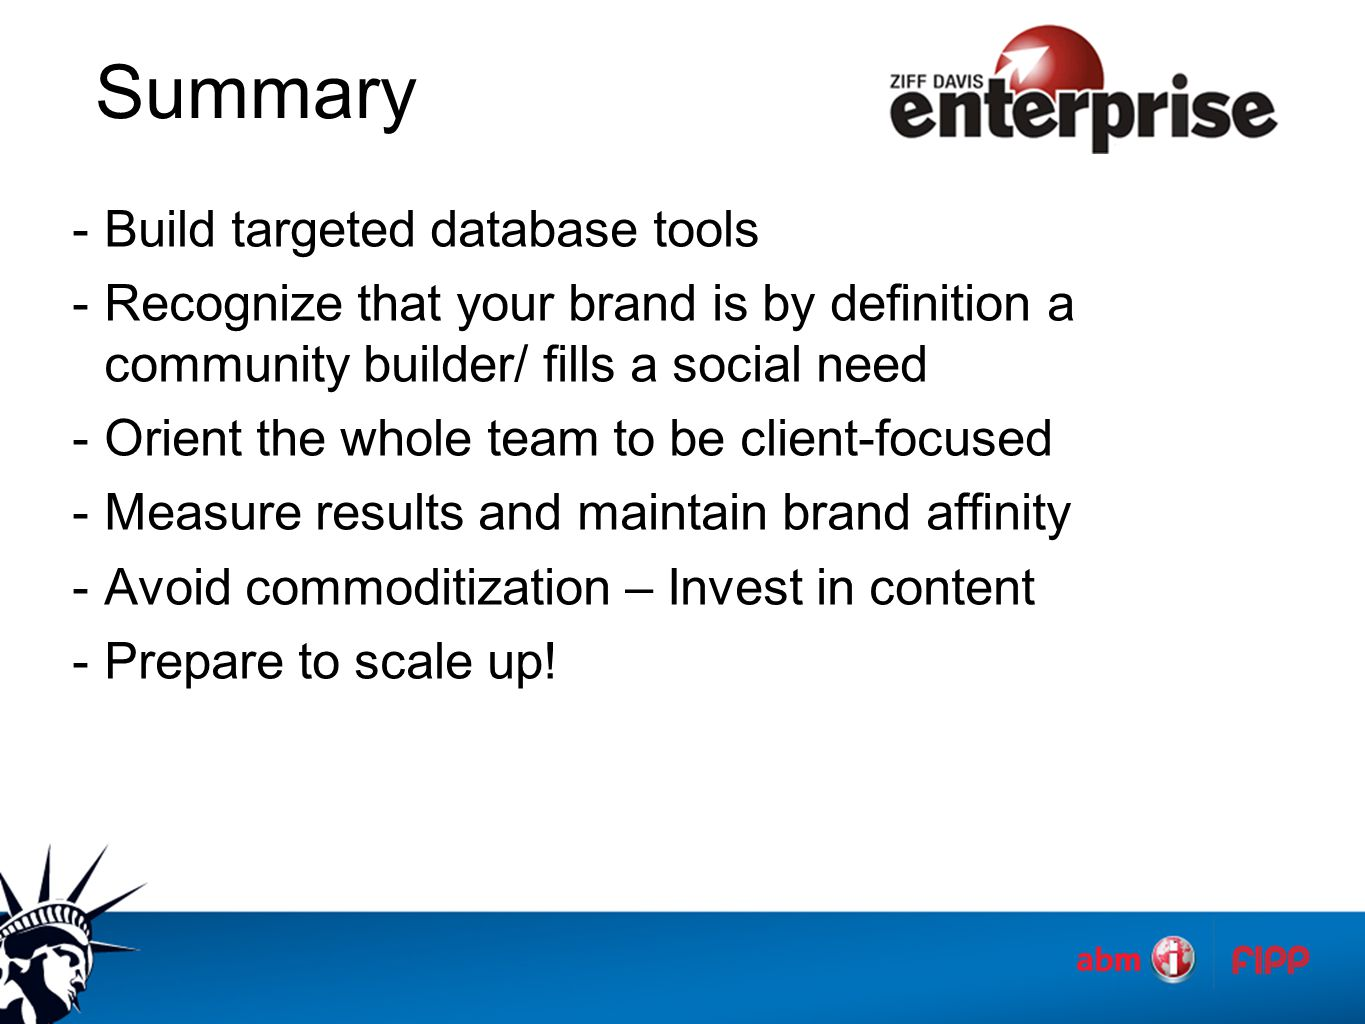 Summary -Build targeted database tools -Recognize that your brand is by definition a community builder/ fills a social need -Orient the whole team to be client-focused -Measure results and maintain brand affinity -Avoid commoditization – Invest in content -Prepare to scale up!